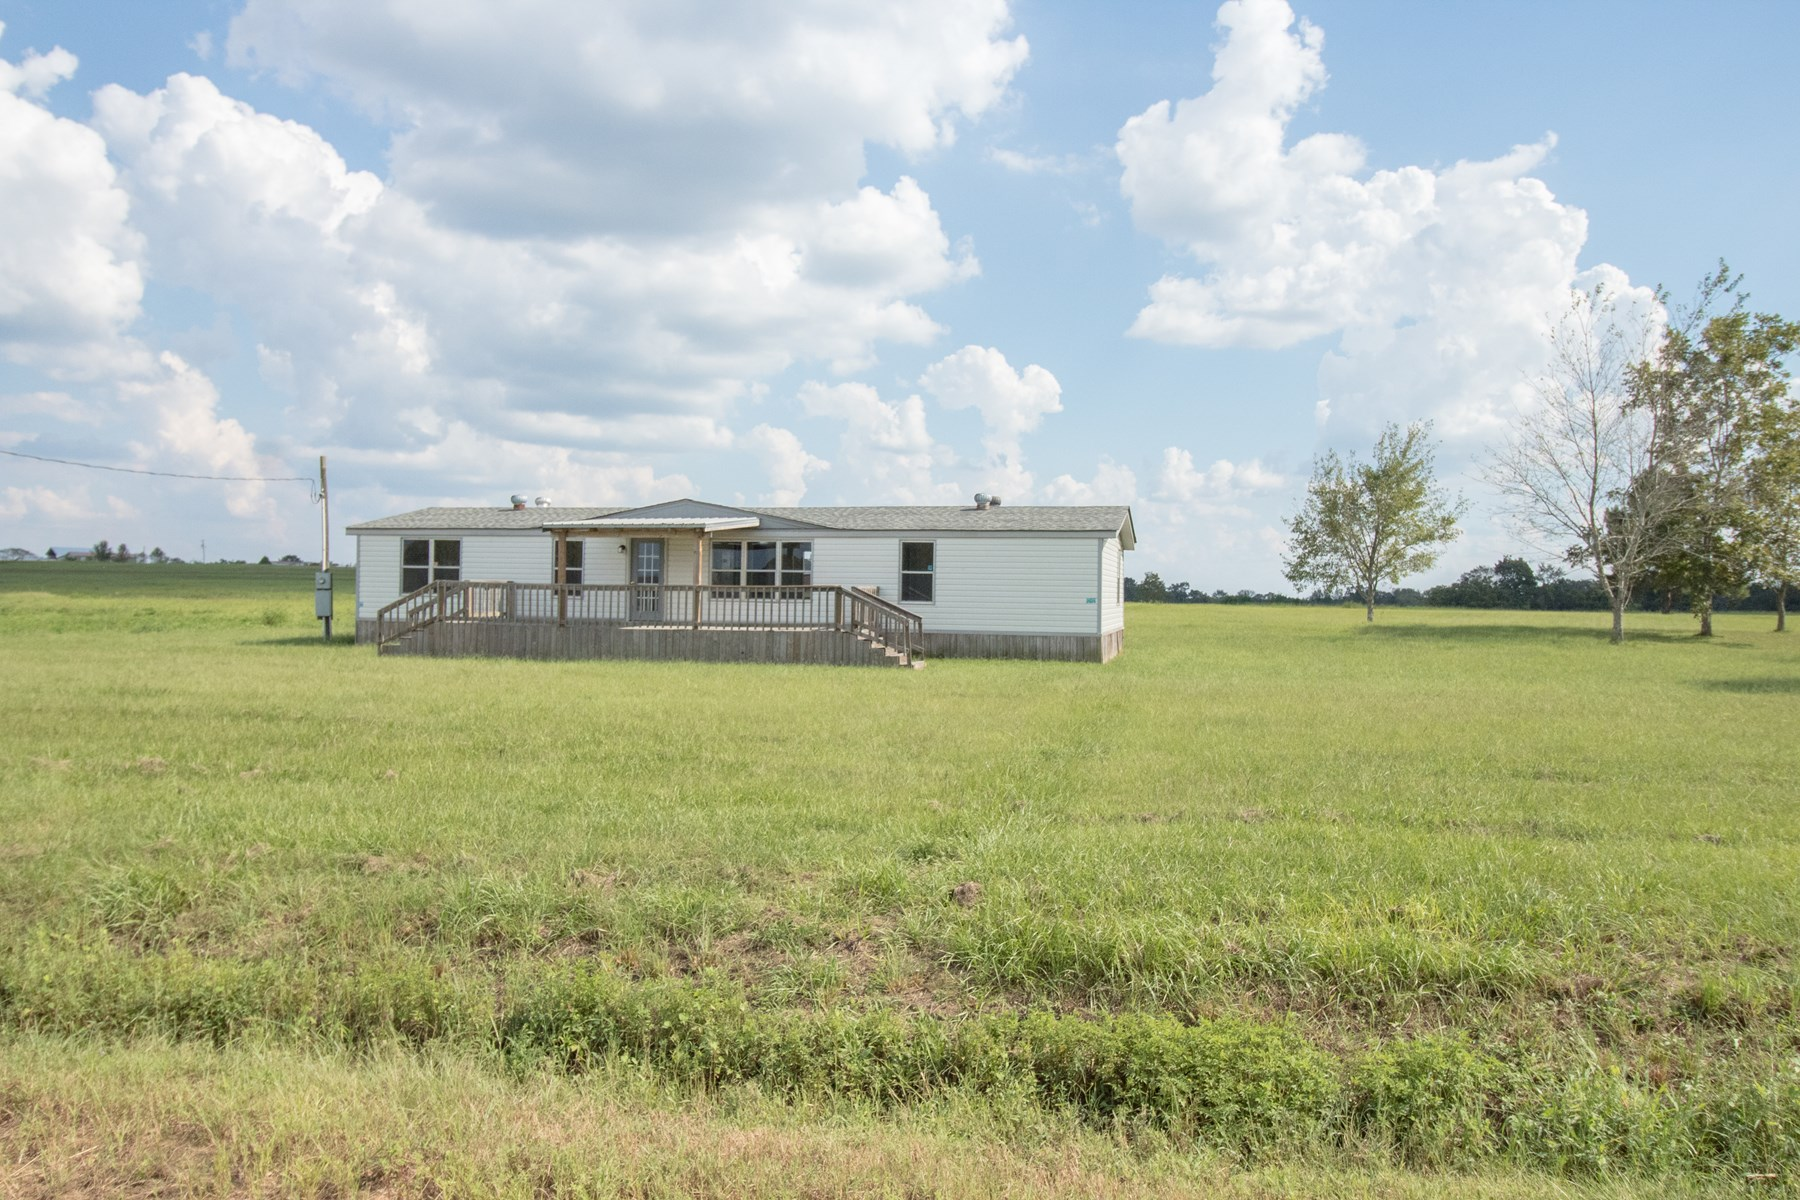 3B/2B MOBILE HOME FOR SALE ON 3.23 ACRES SLOCOMB, ALABAMA